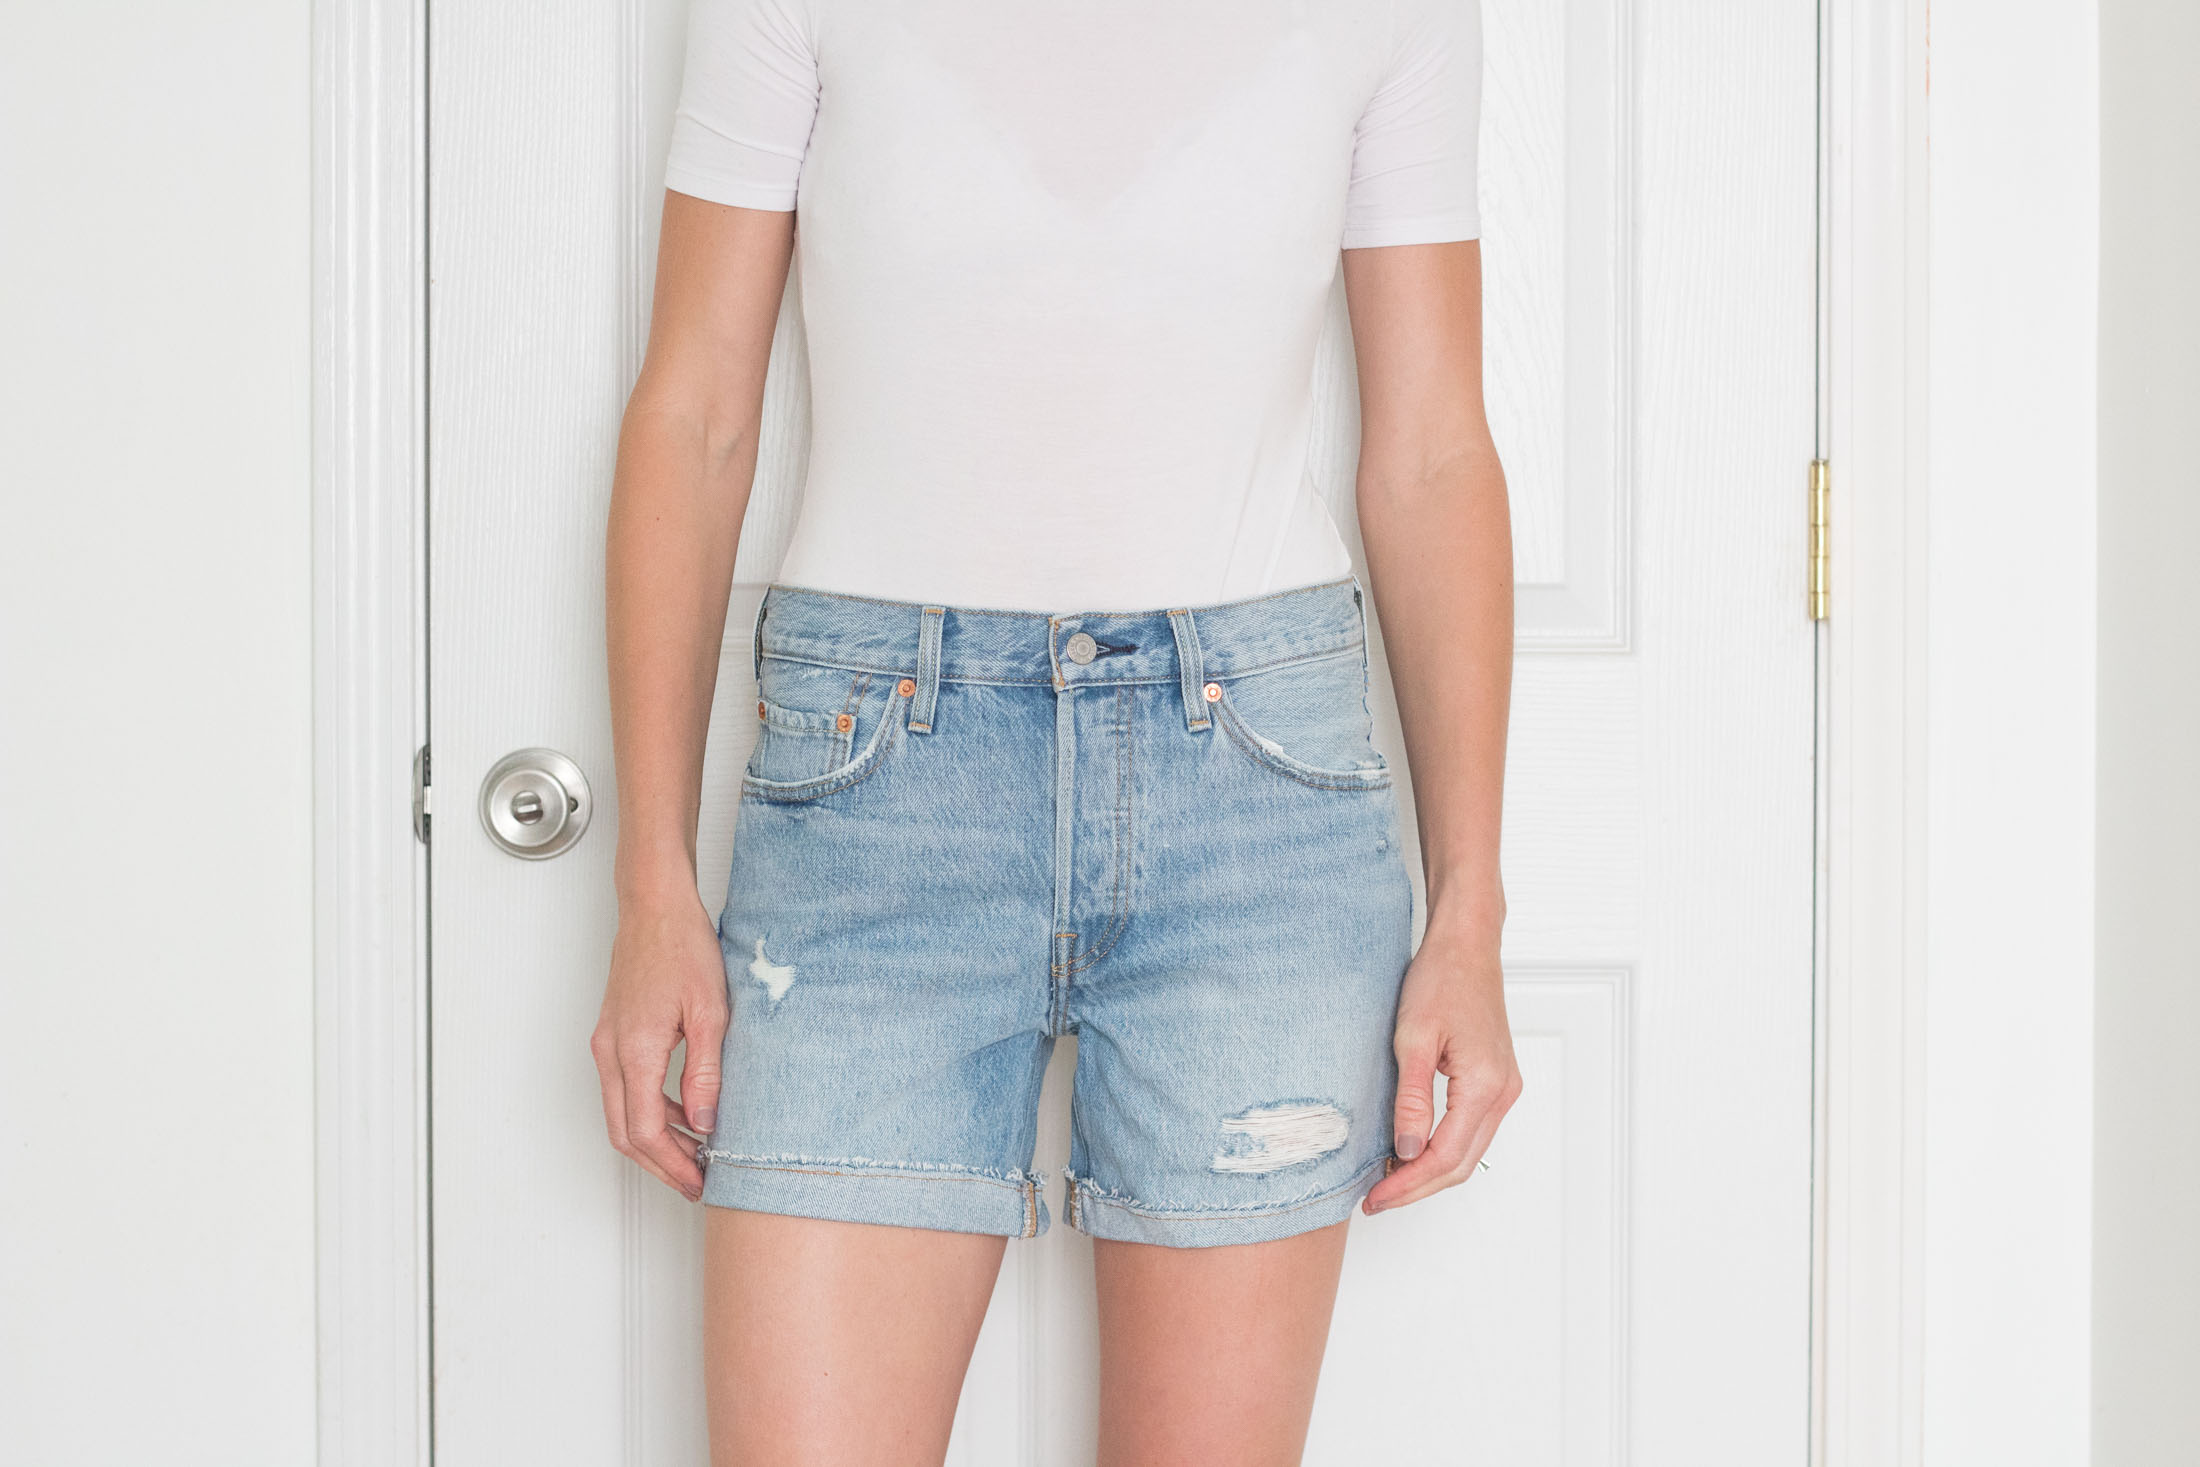 levis-501-cuffed-long-denim-shorts